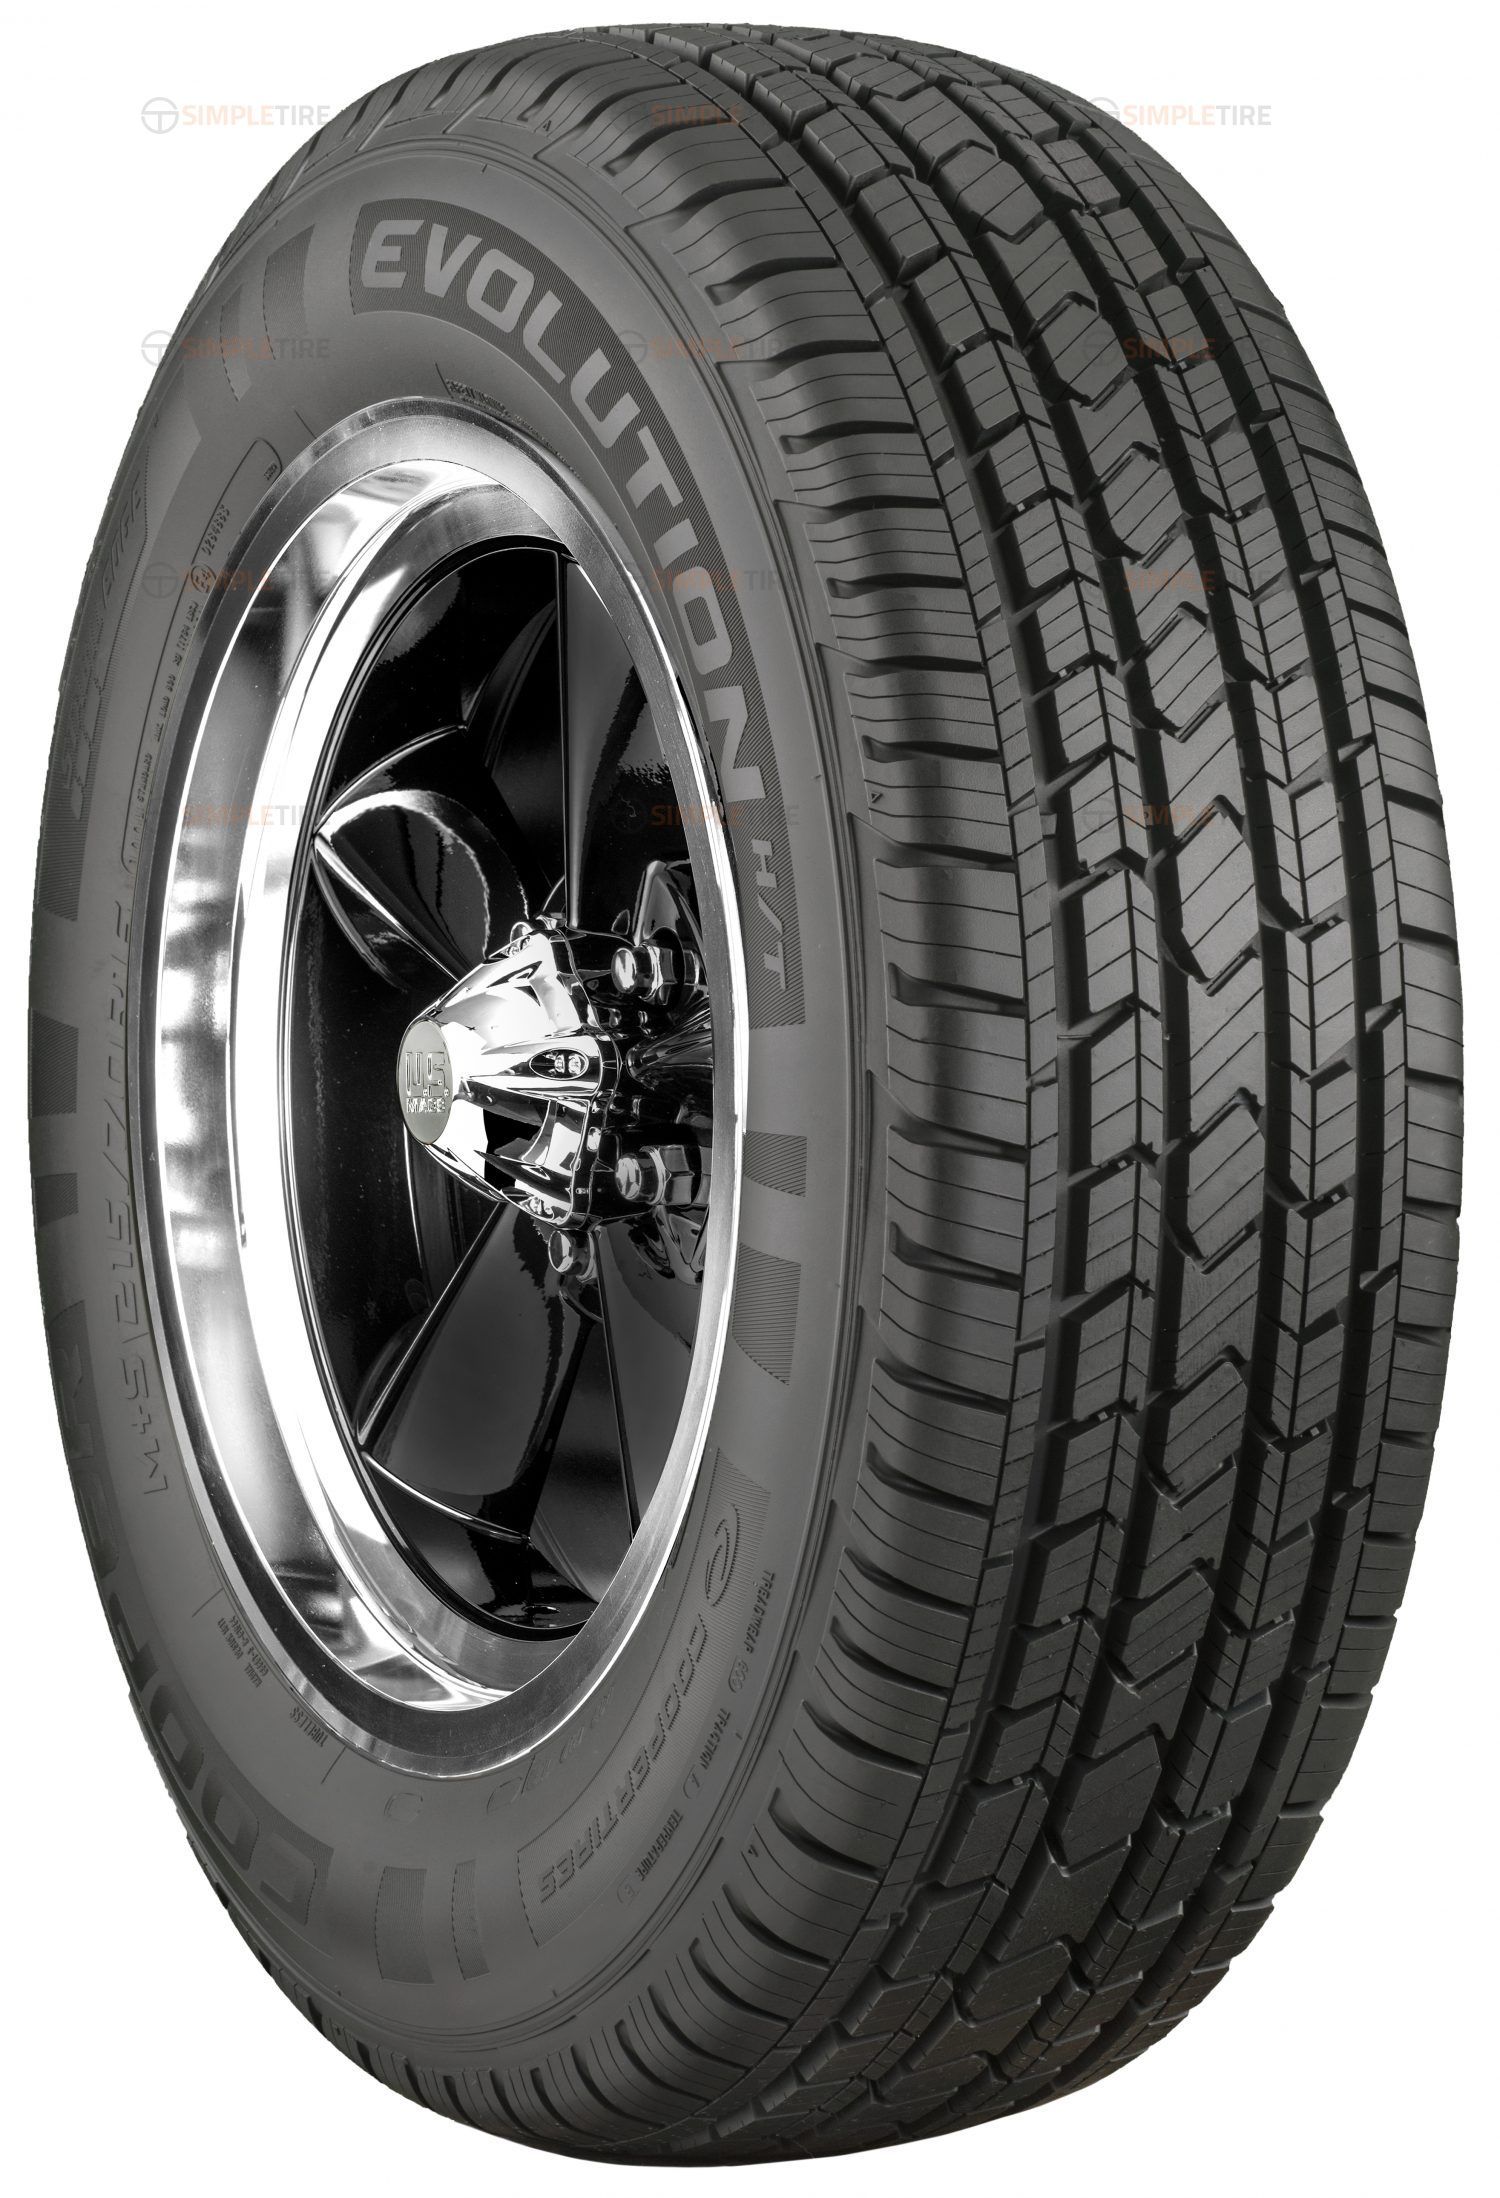 90000029104 245/75R16 Evolution HT Cooper